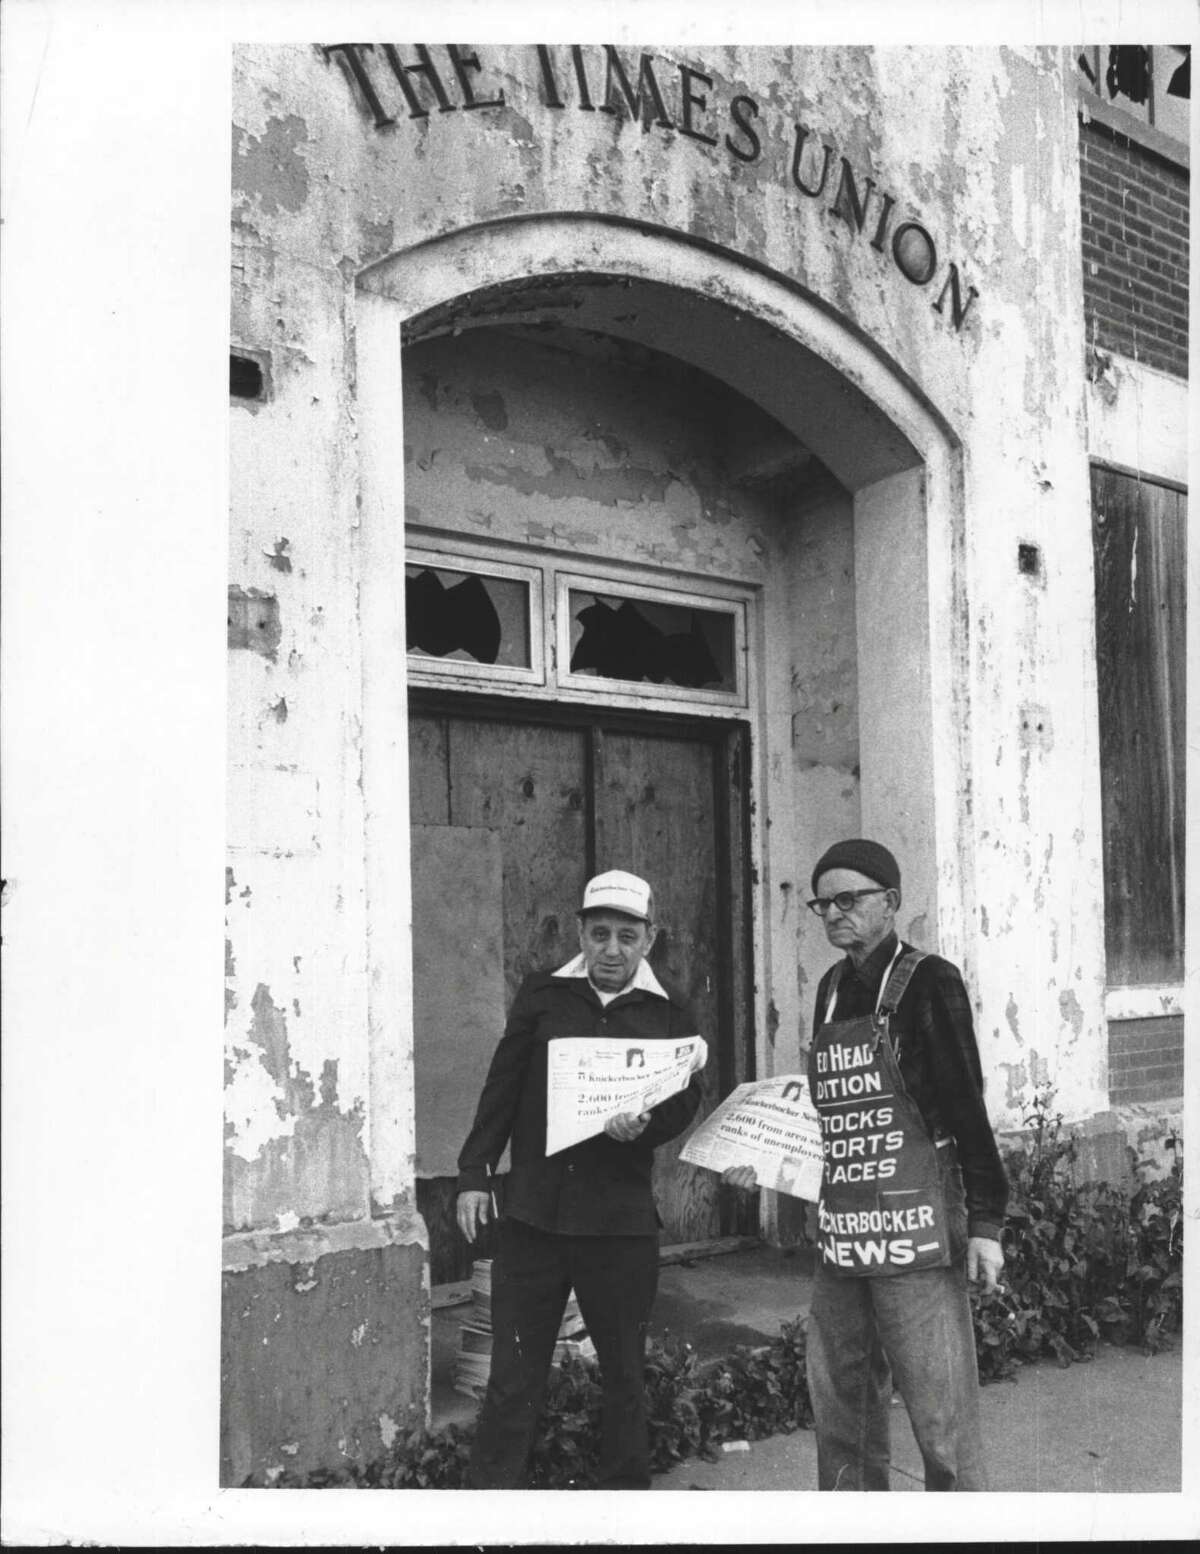 Albany, New York - Mandel Finkelstein with George Rysedorph outside old Times Union building on Sheridan Avenue. October 29, 1982 (Tom LaPoint/Times Union Archive)